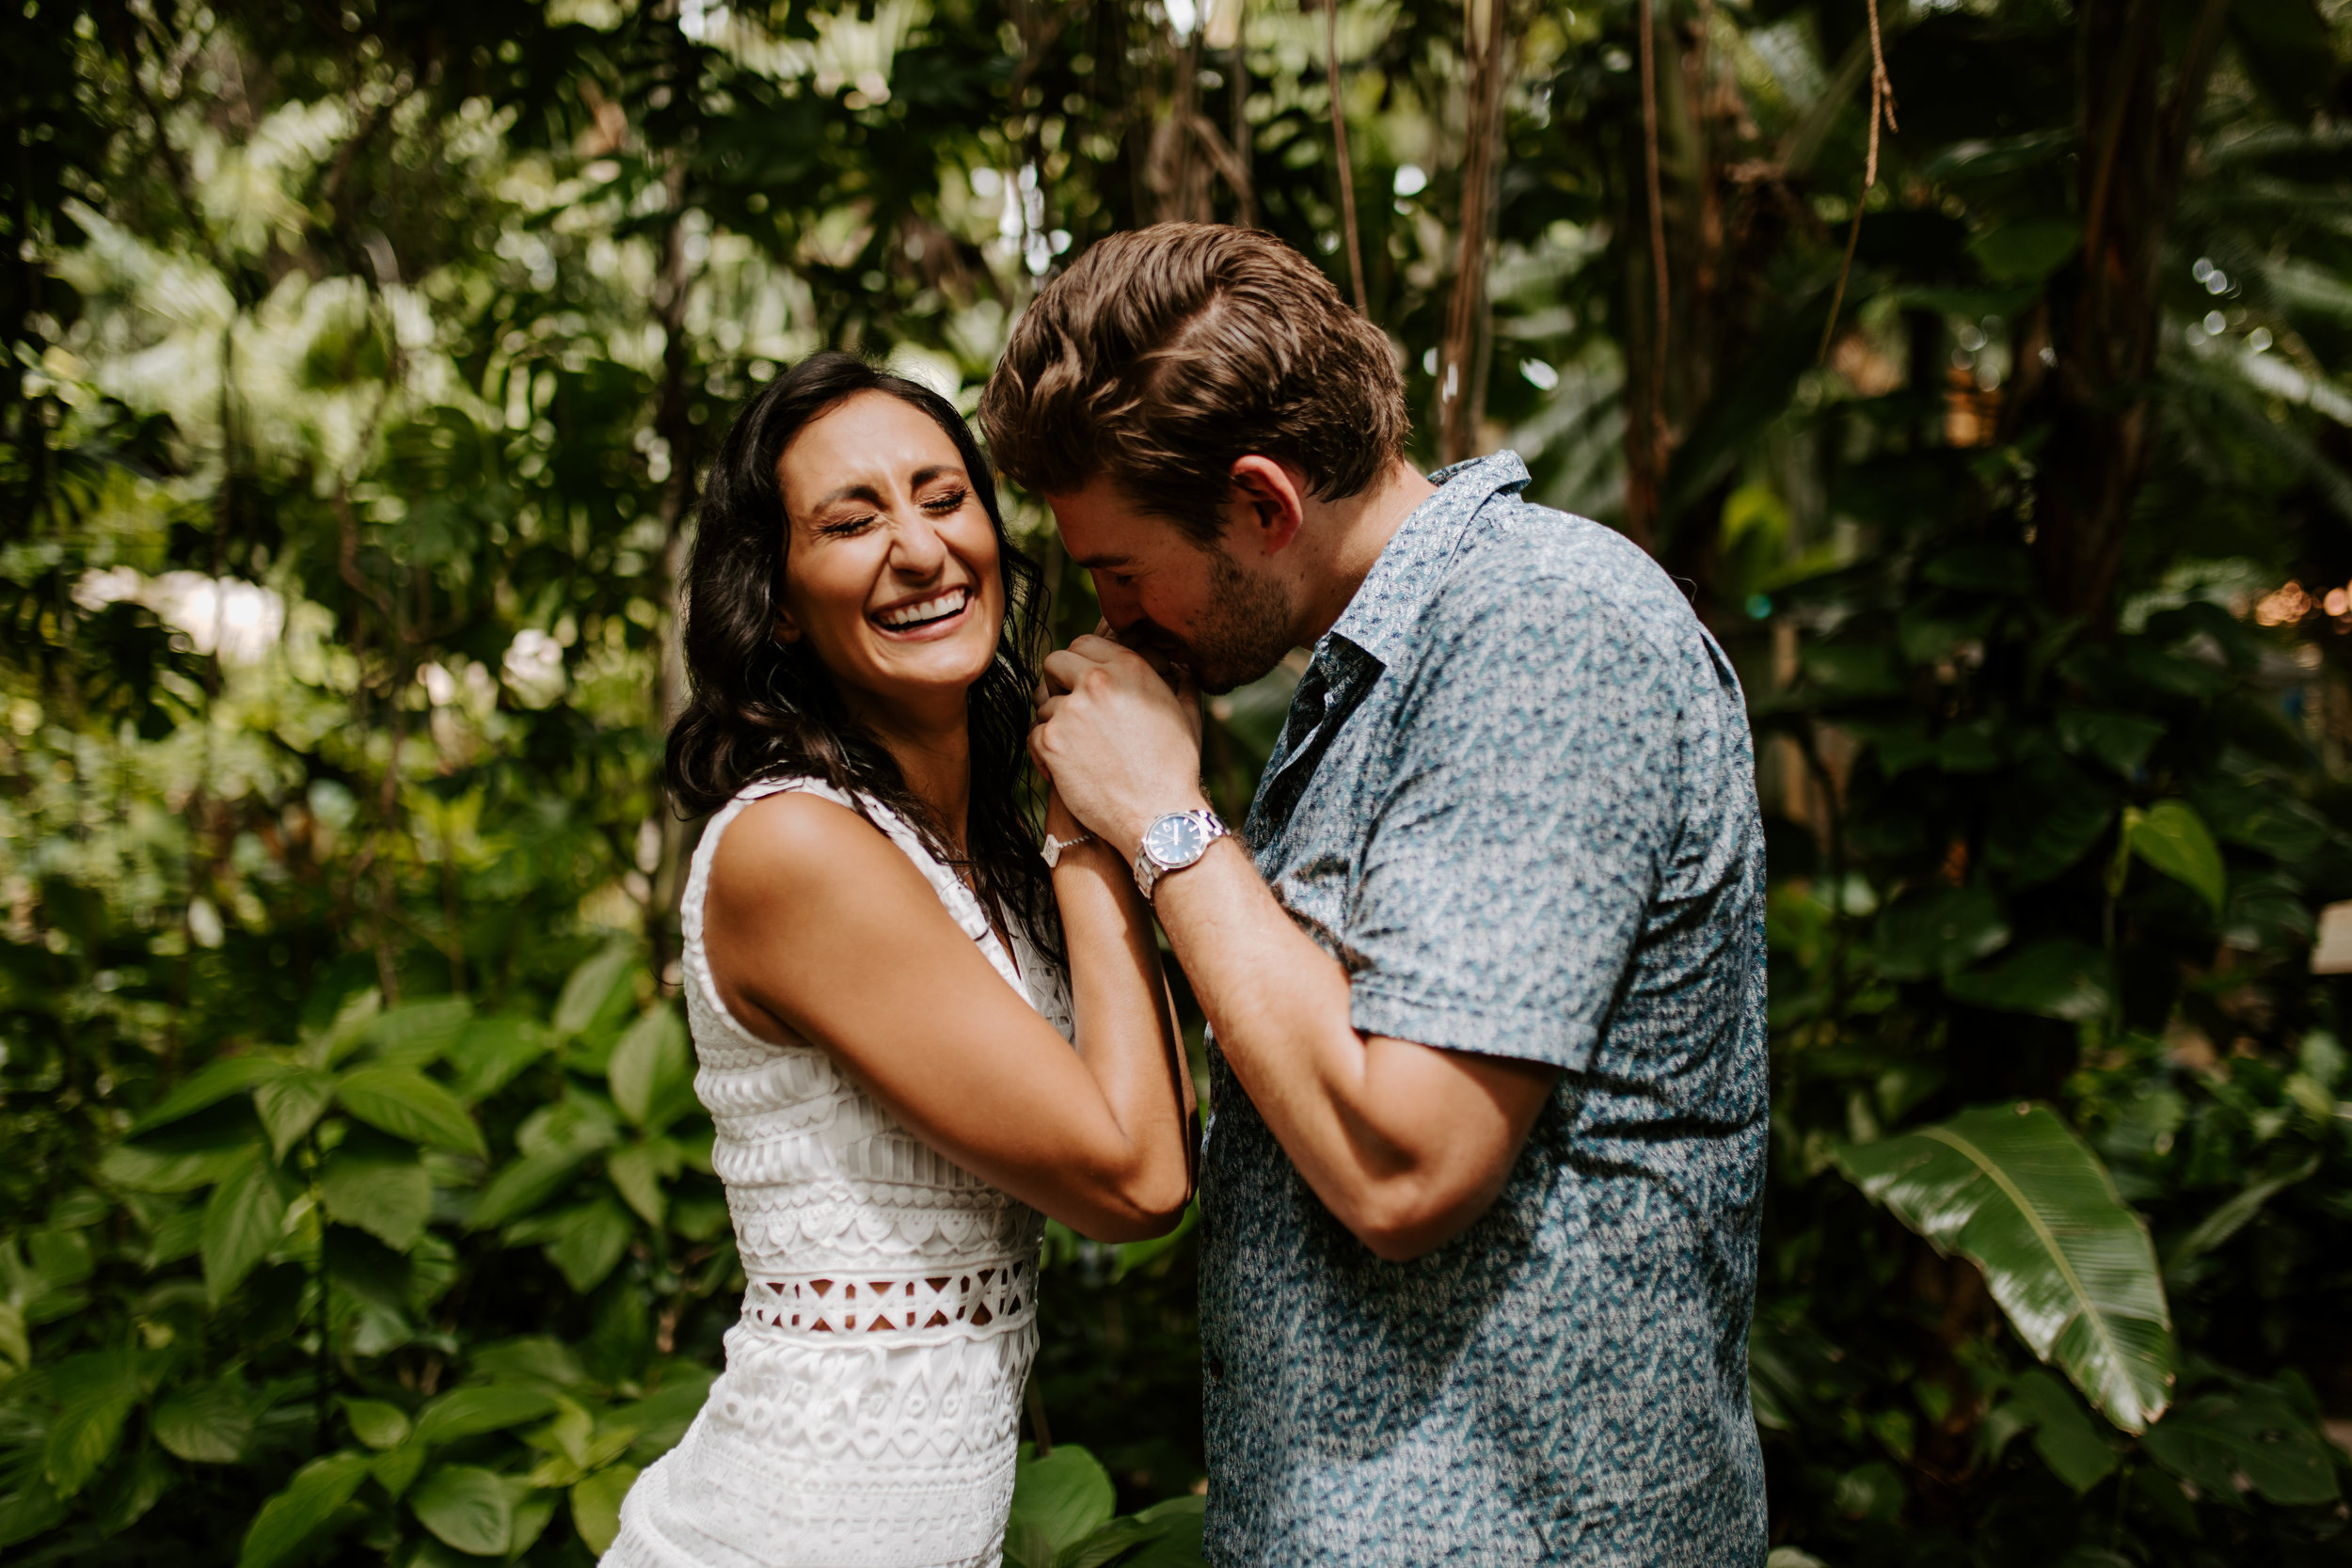 Sunken_Gardens-St_Pete-Allie_+_Eric-Engagement-Native_Expressions-343.jpg